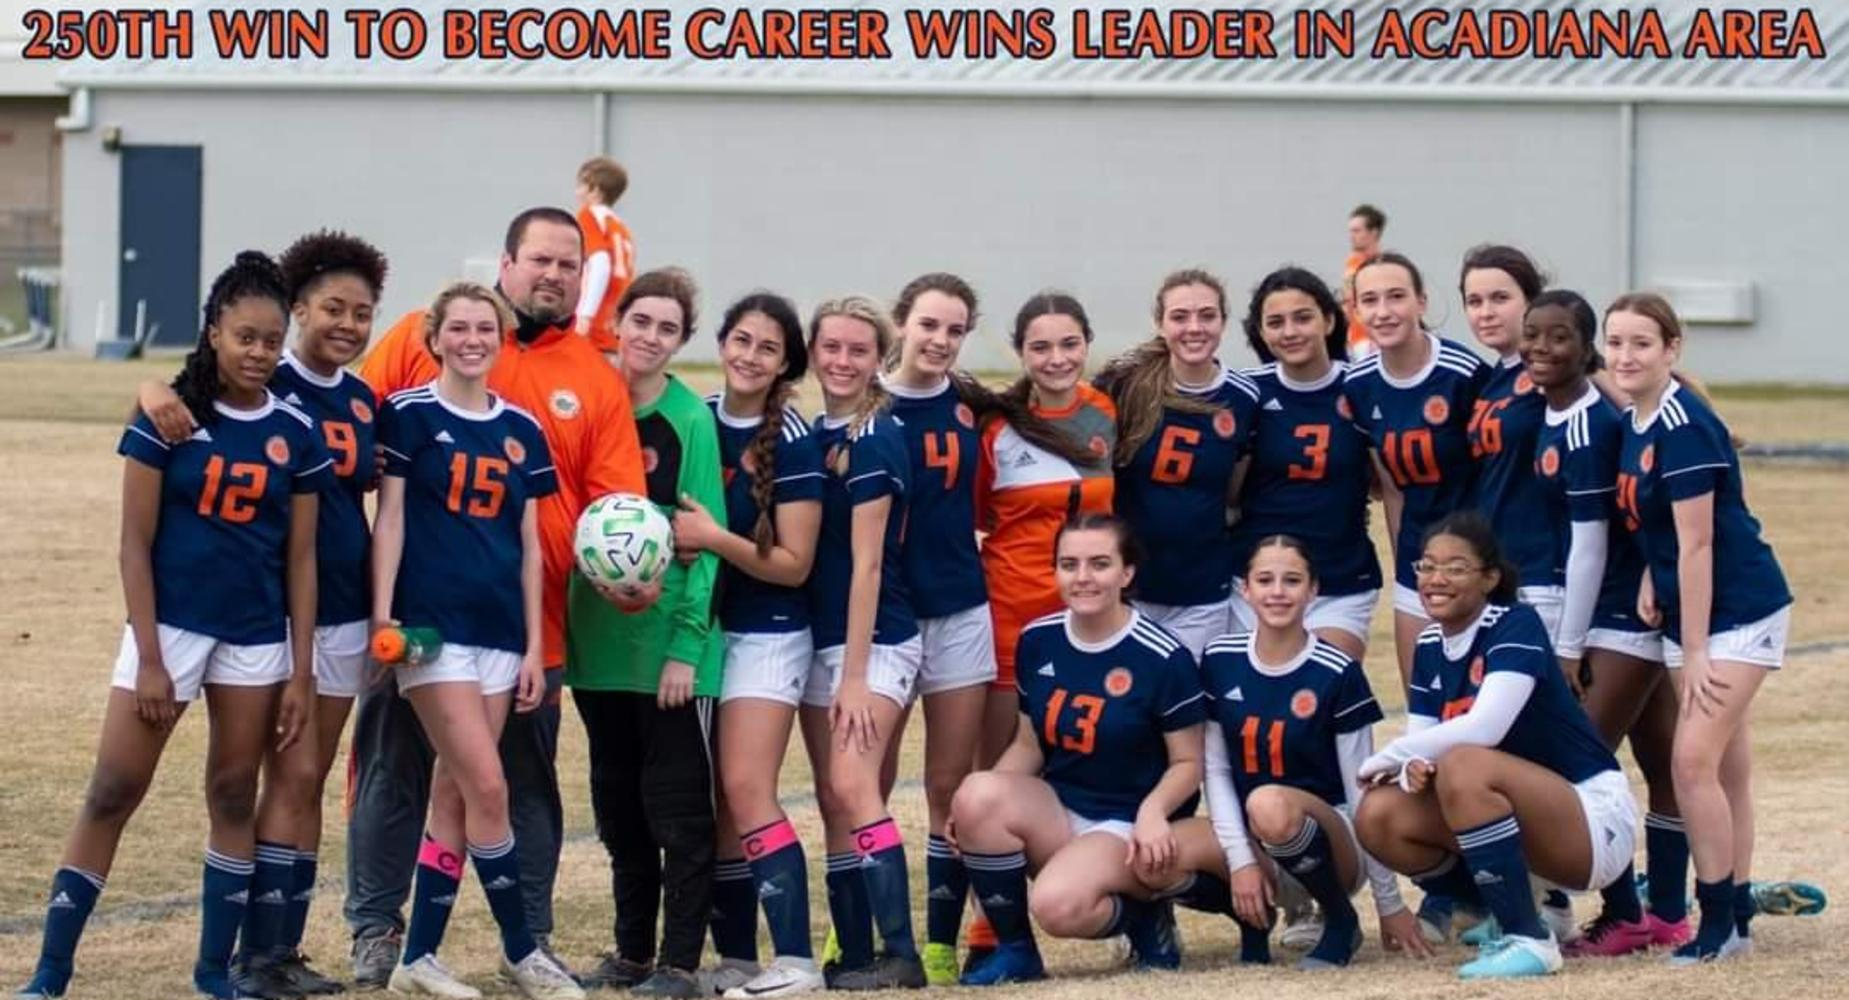 BCHS Girls Soccer Team 250 Win to became Career Wins Leader in Acadiana Area